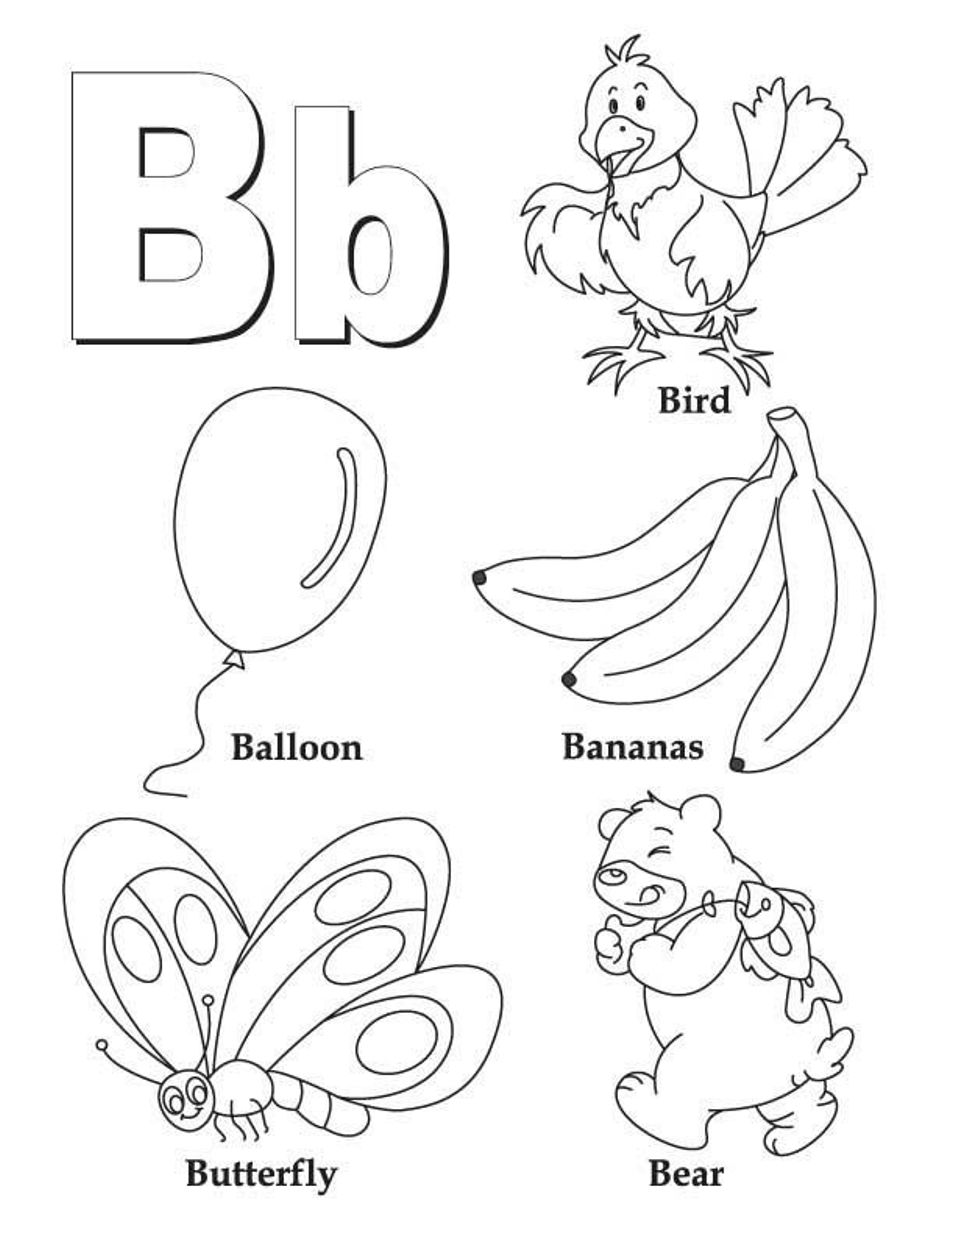 b coloring sheets letter b is for bunny coloring page free printable b sheets coloring